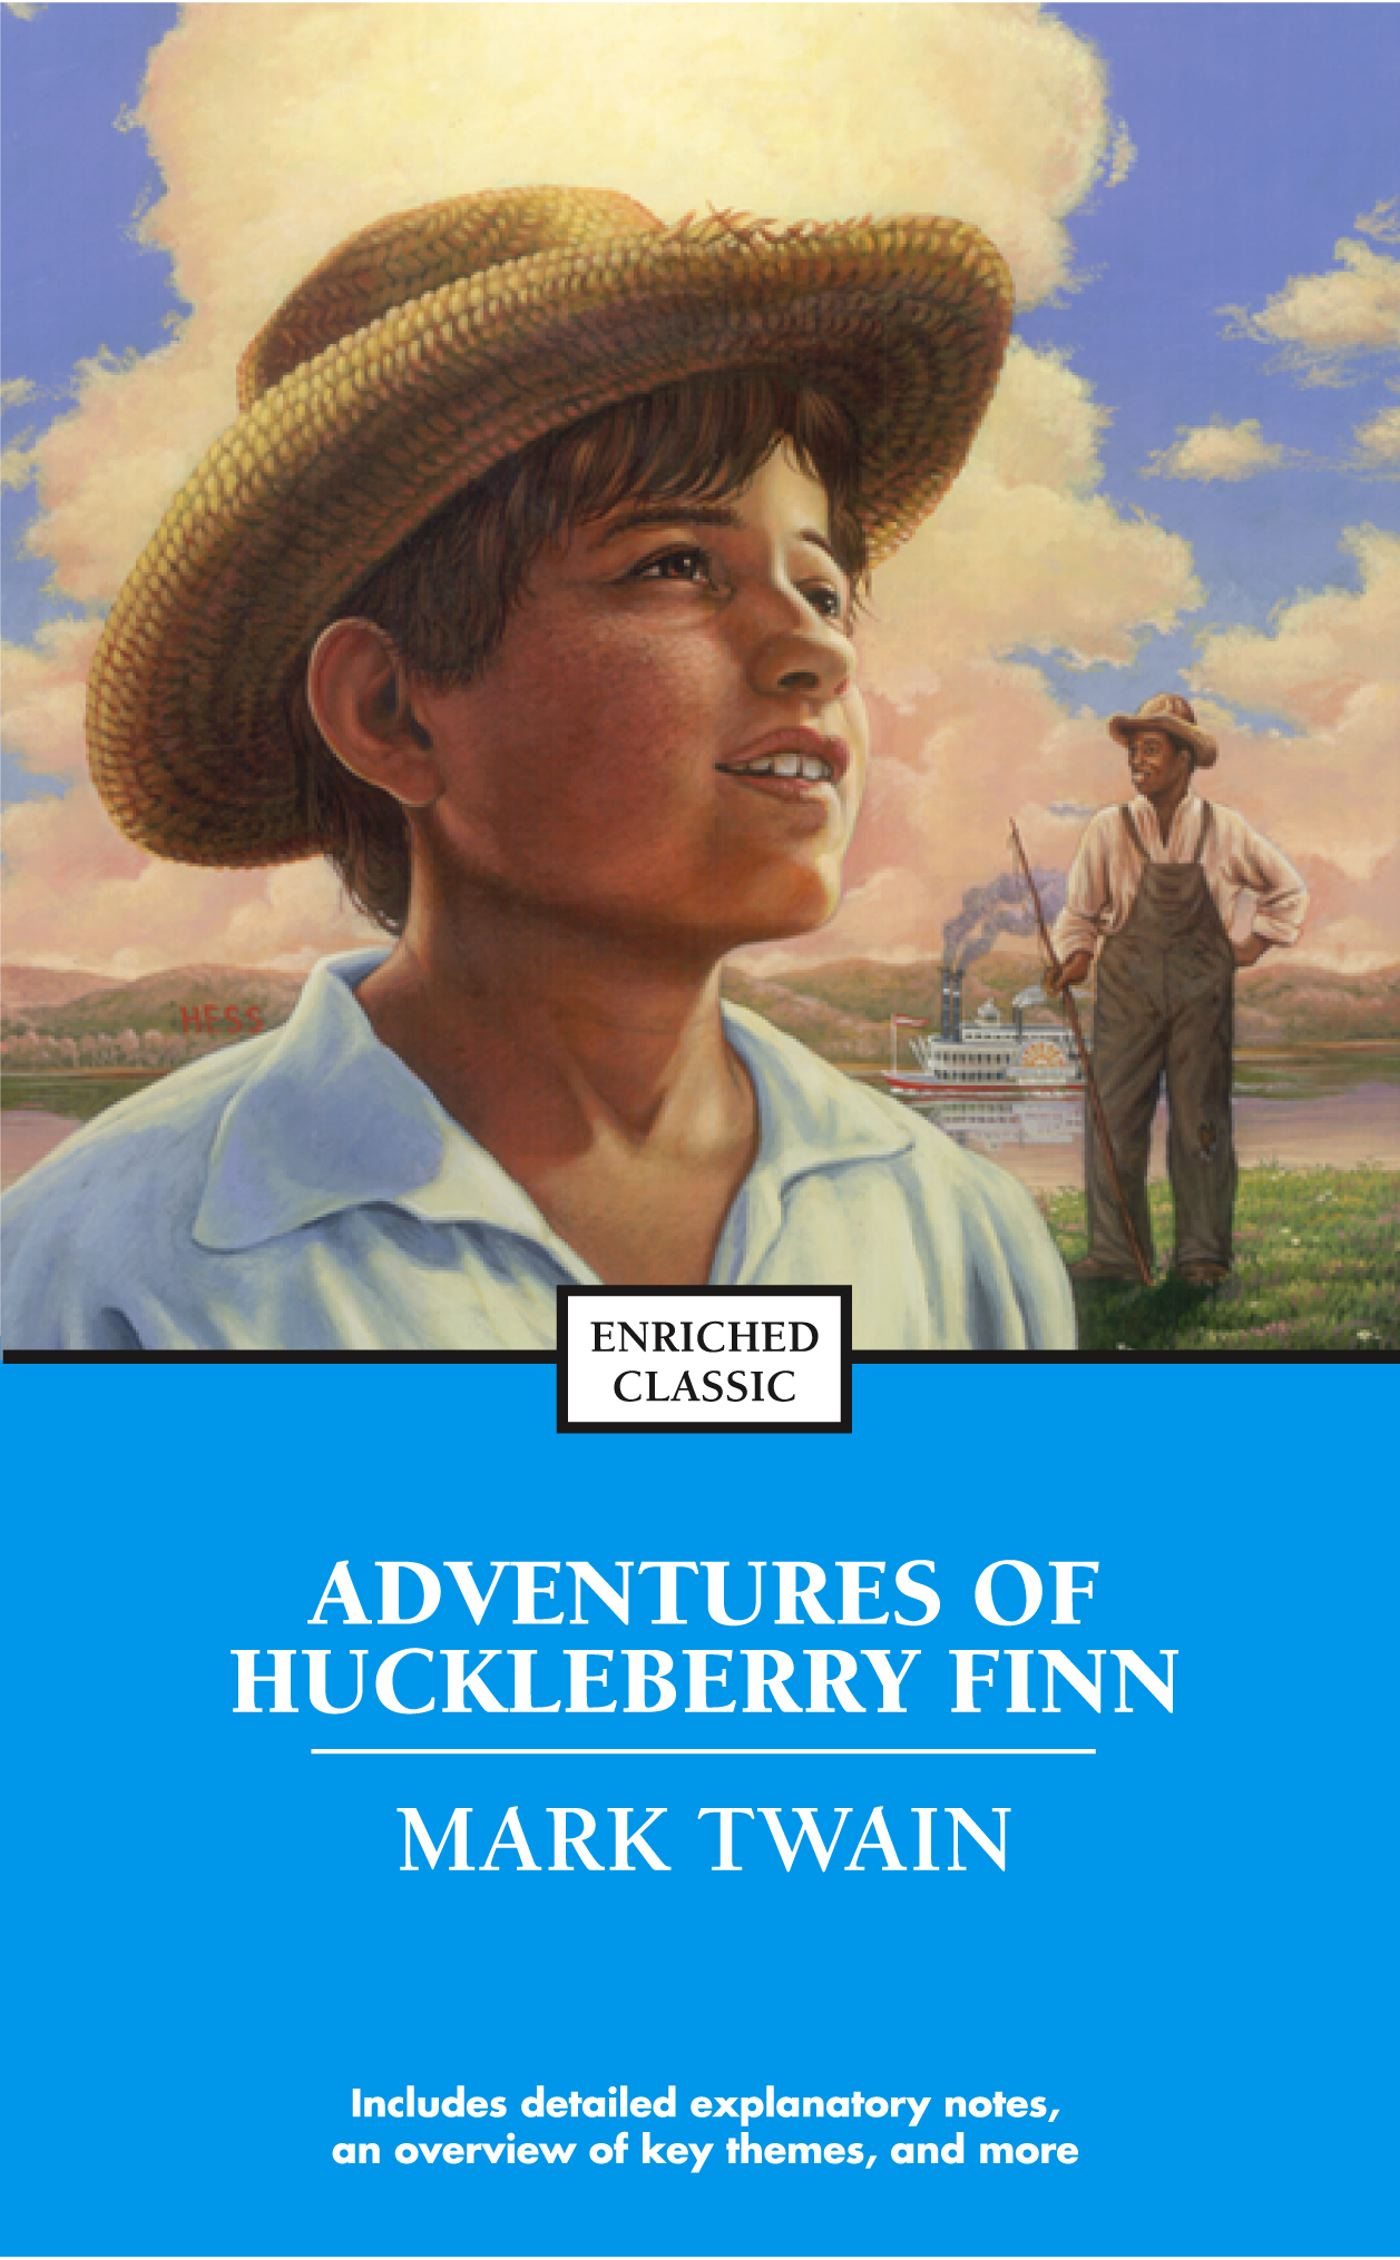 Adventures of Huckleberry Finn | Novel